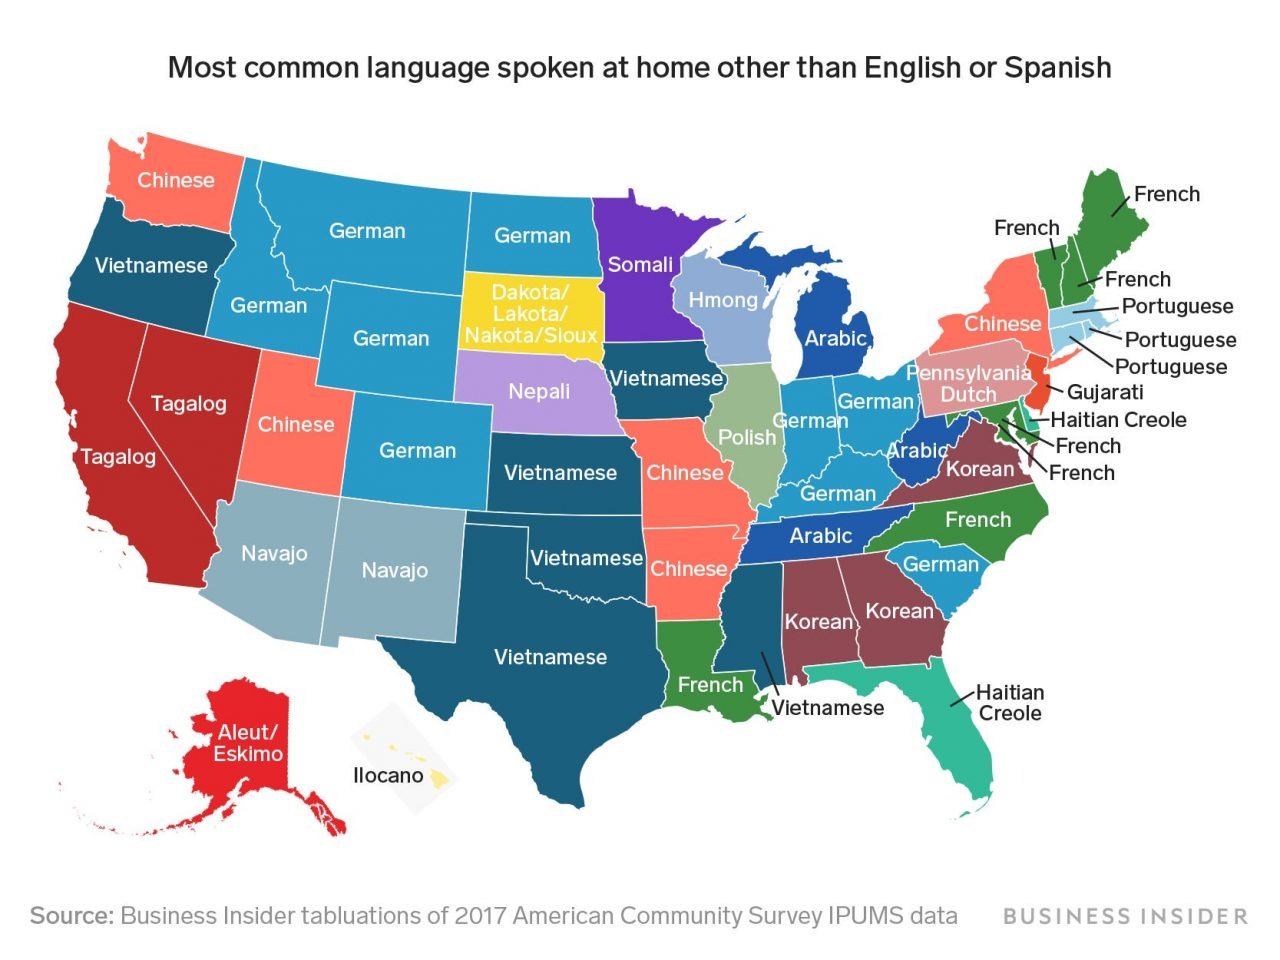 A Revealing Map of the Most Common Languages Spoken in the U.S. Other Than English or Spanish